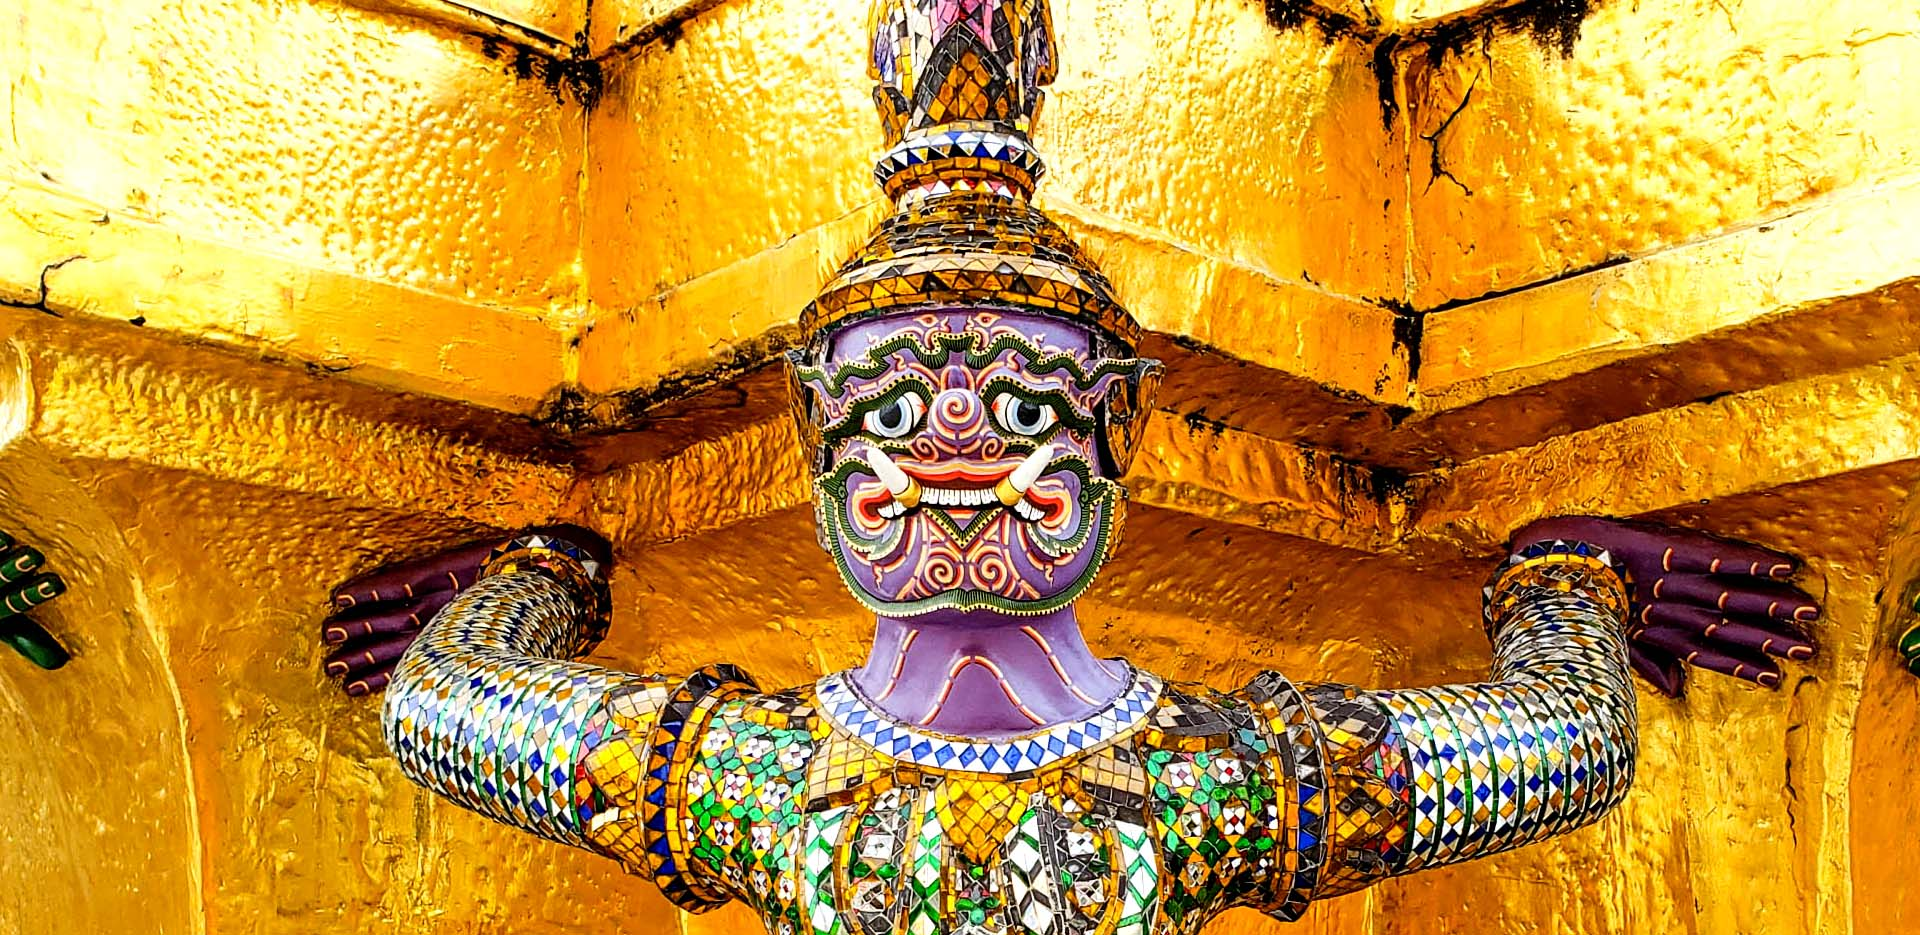 Demon Statue With Purple Face at Wat Phra Kaew in Grand Palace